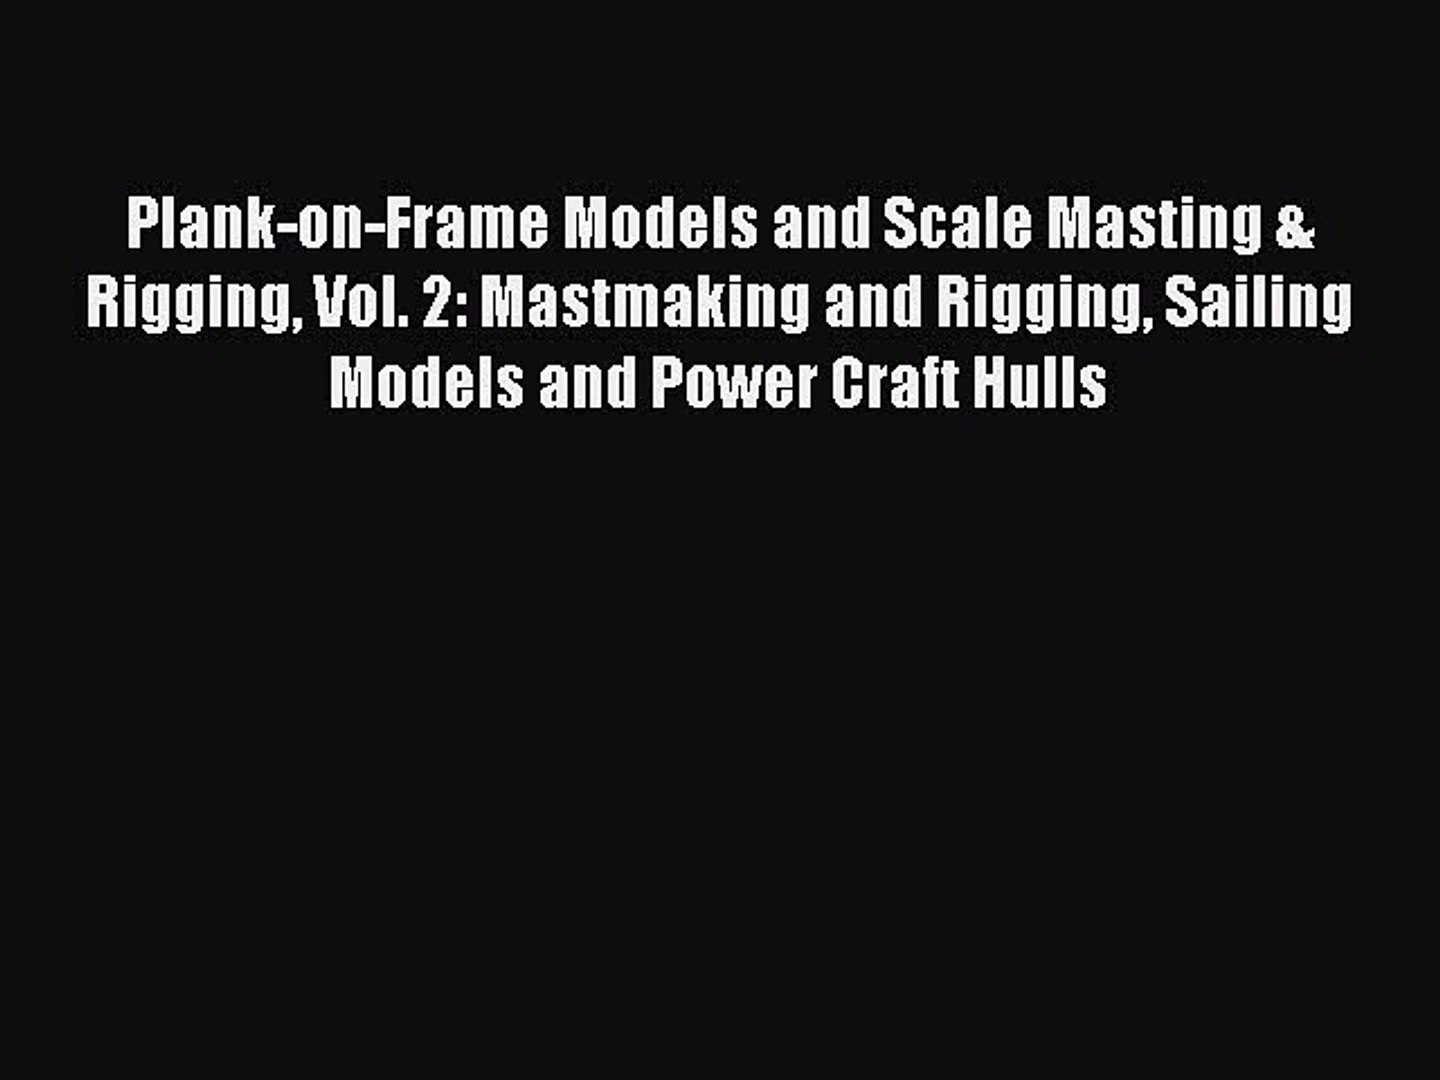 Read Plank-on-Frame Models and Scale Masting & Rigging Vol. 2: Mastmaking and Rigging Sailing